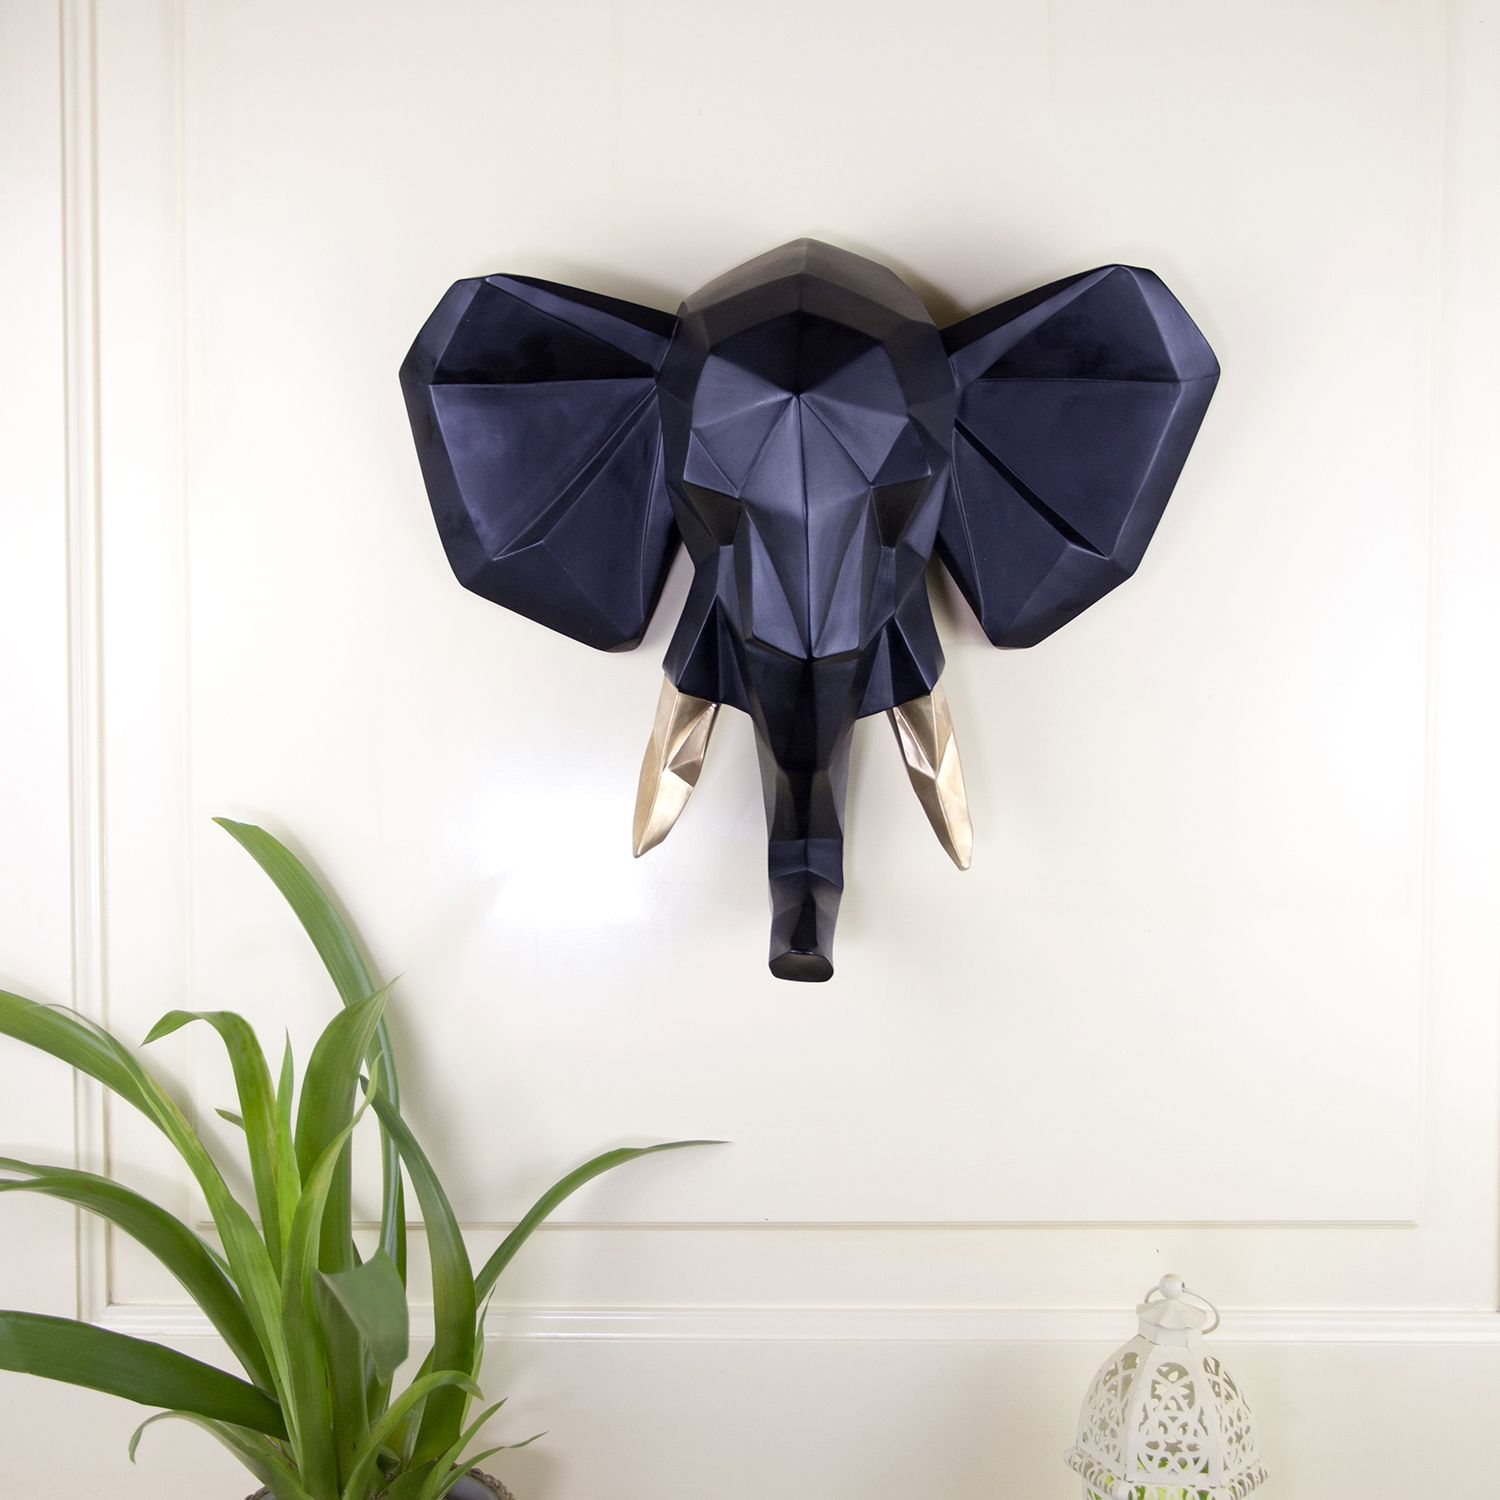 Contemporary Faux Taxidermy Black Gold Geometric Elephant Wall Mount Sculpture Art Decorations Home Idea